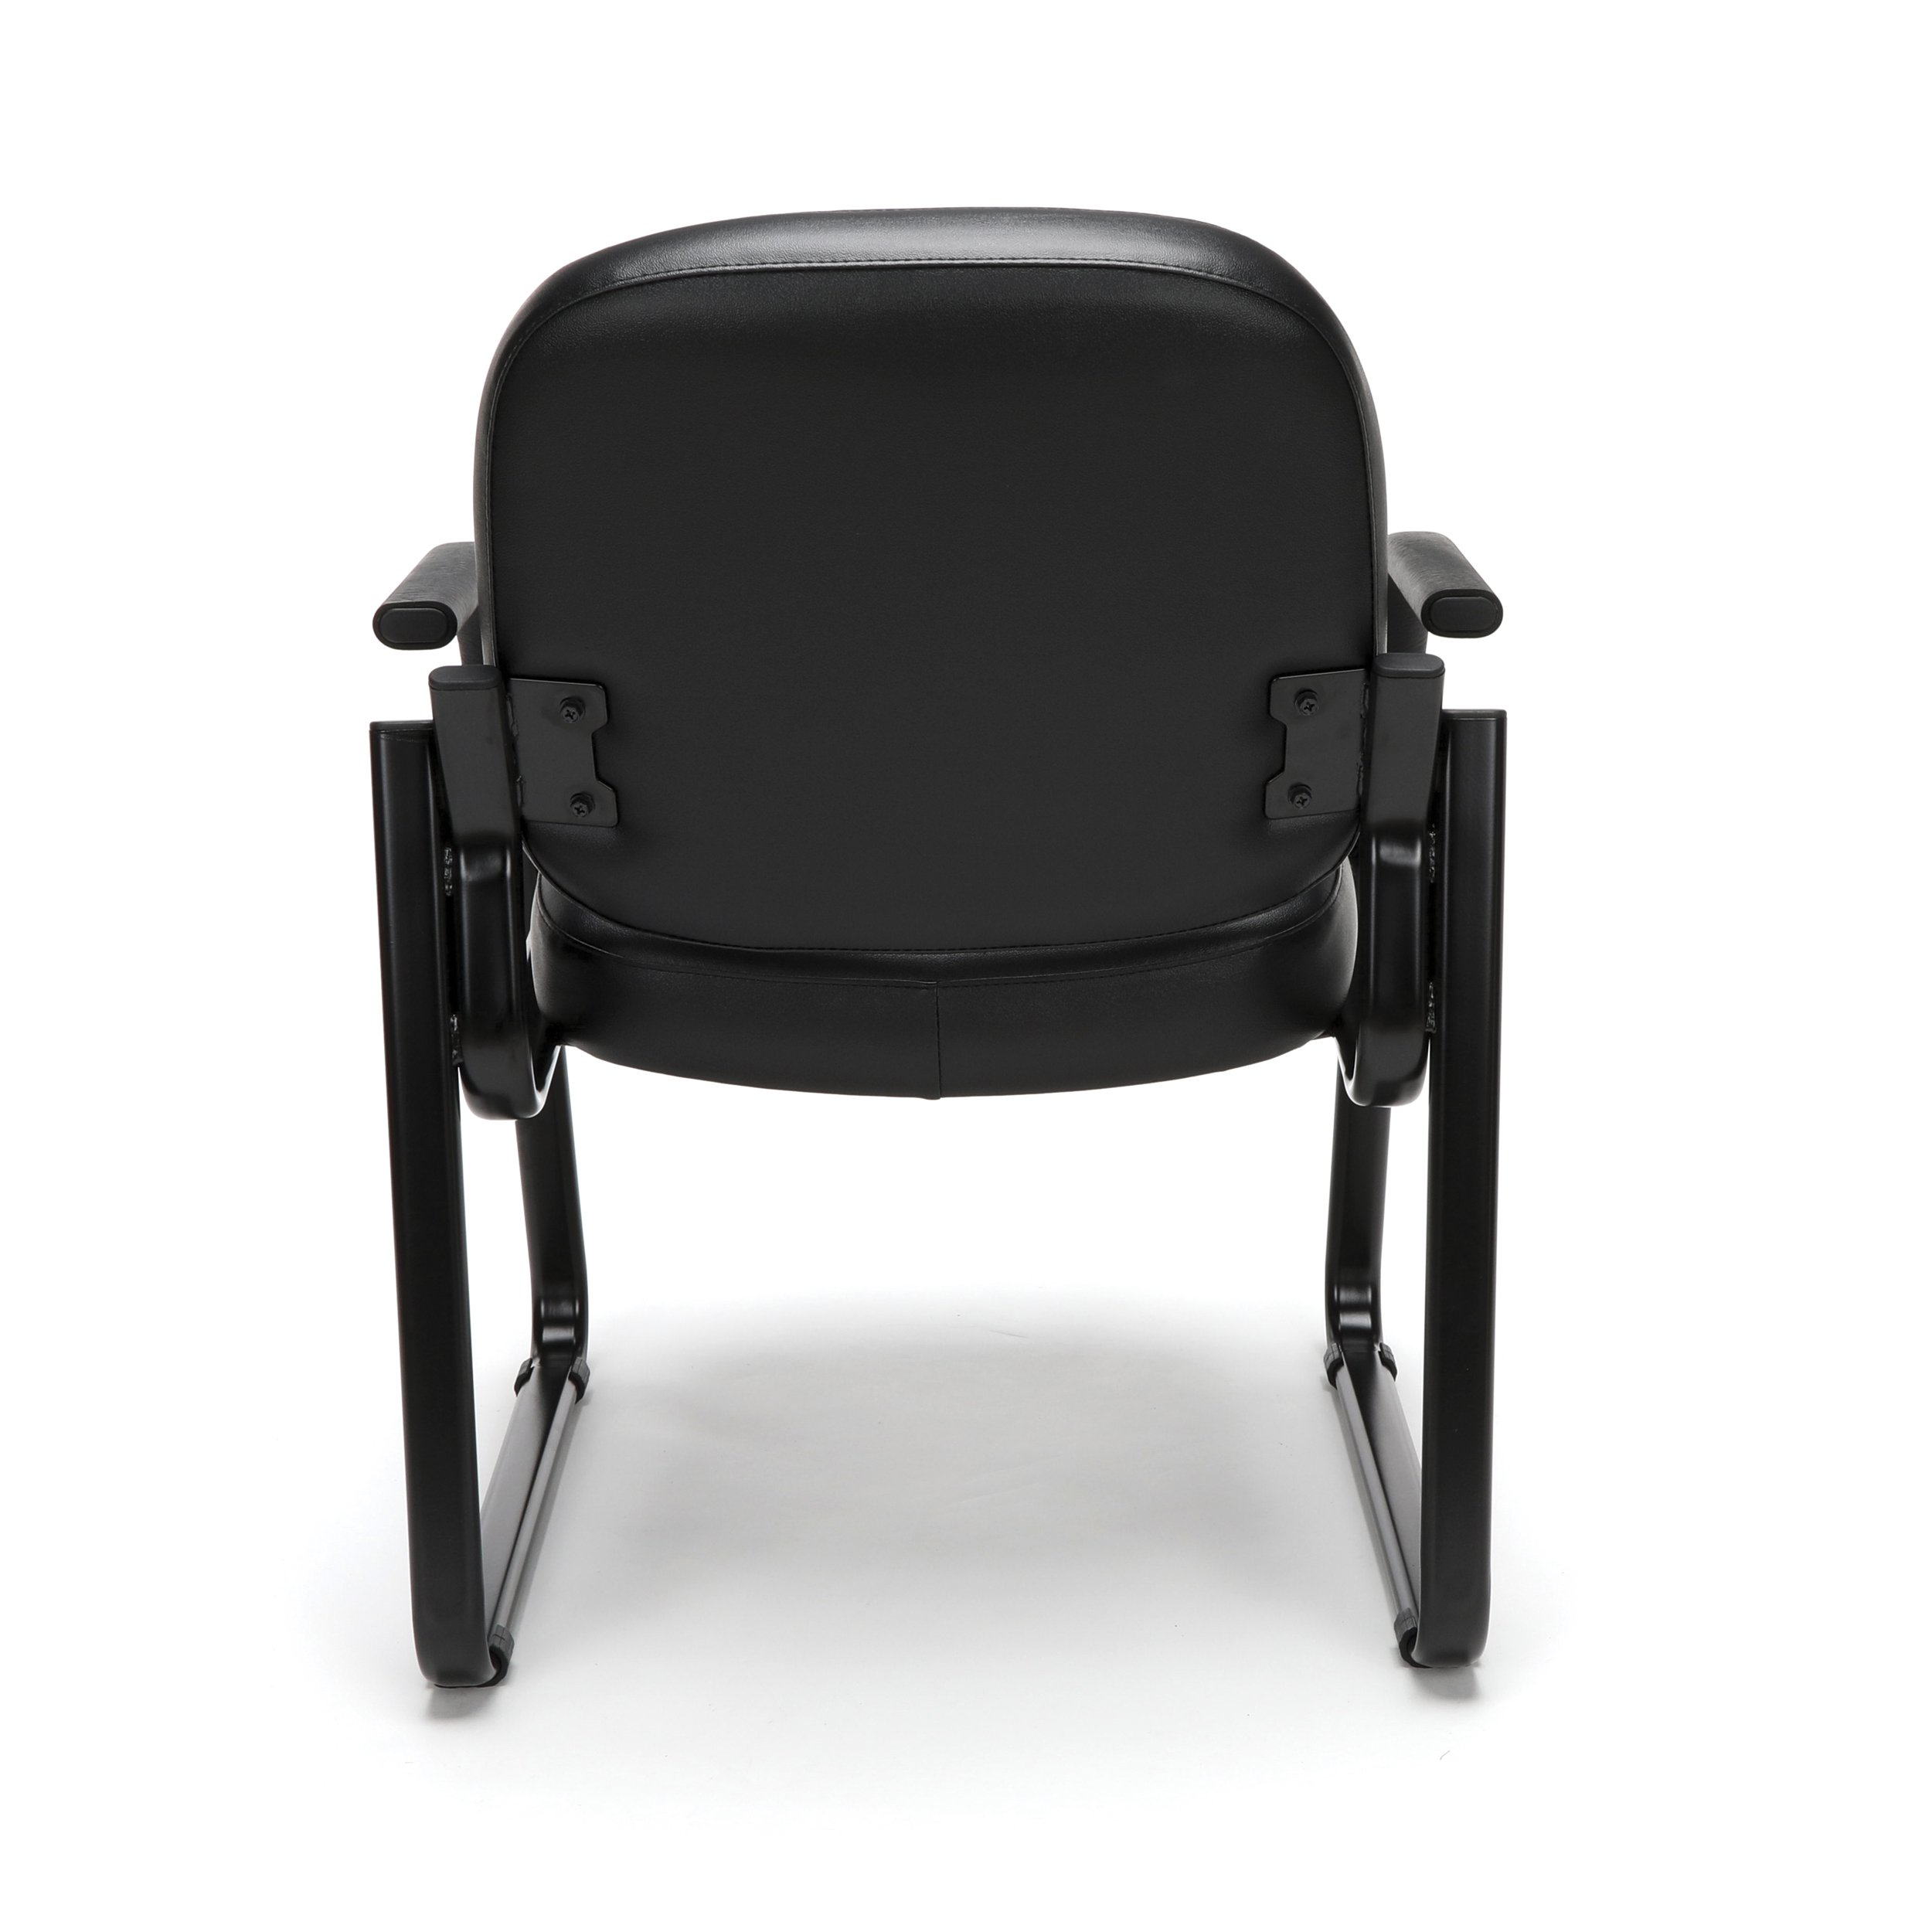 OFM Model 403-VAM Guest and Reception Chair with Arms, Anti-Microbial/Anti-Bacterial Vinyl, Black by OFM (Image #4)